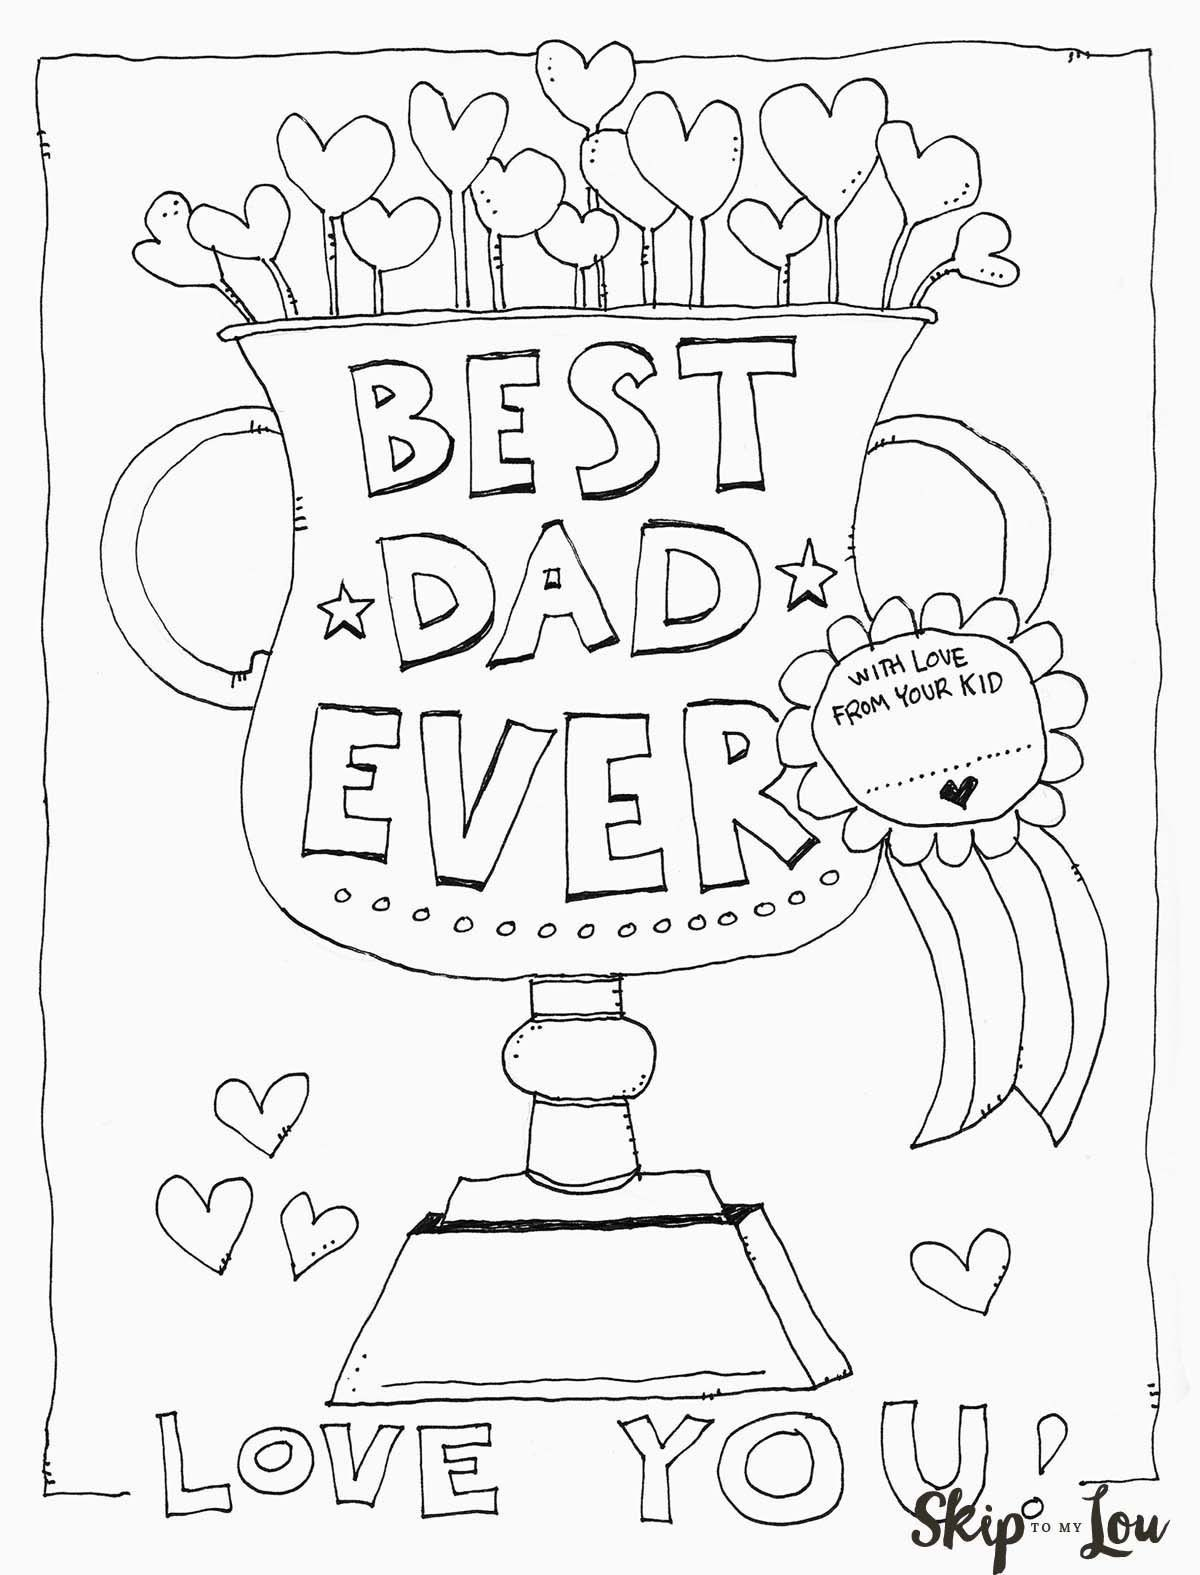 20 Happy Birthday Daddy Coloring Pages In 2020 Fathers Day Coloring Page Birthday Coloring Pages Father S Day Printable